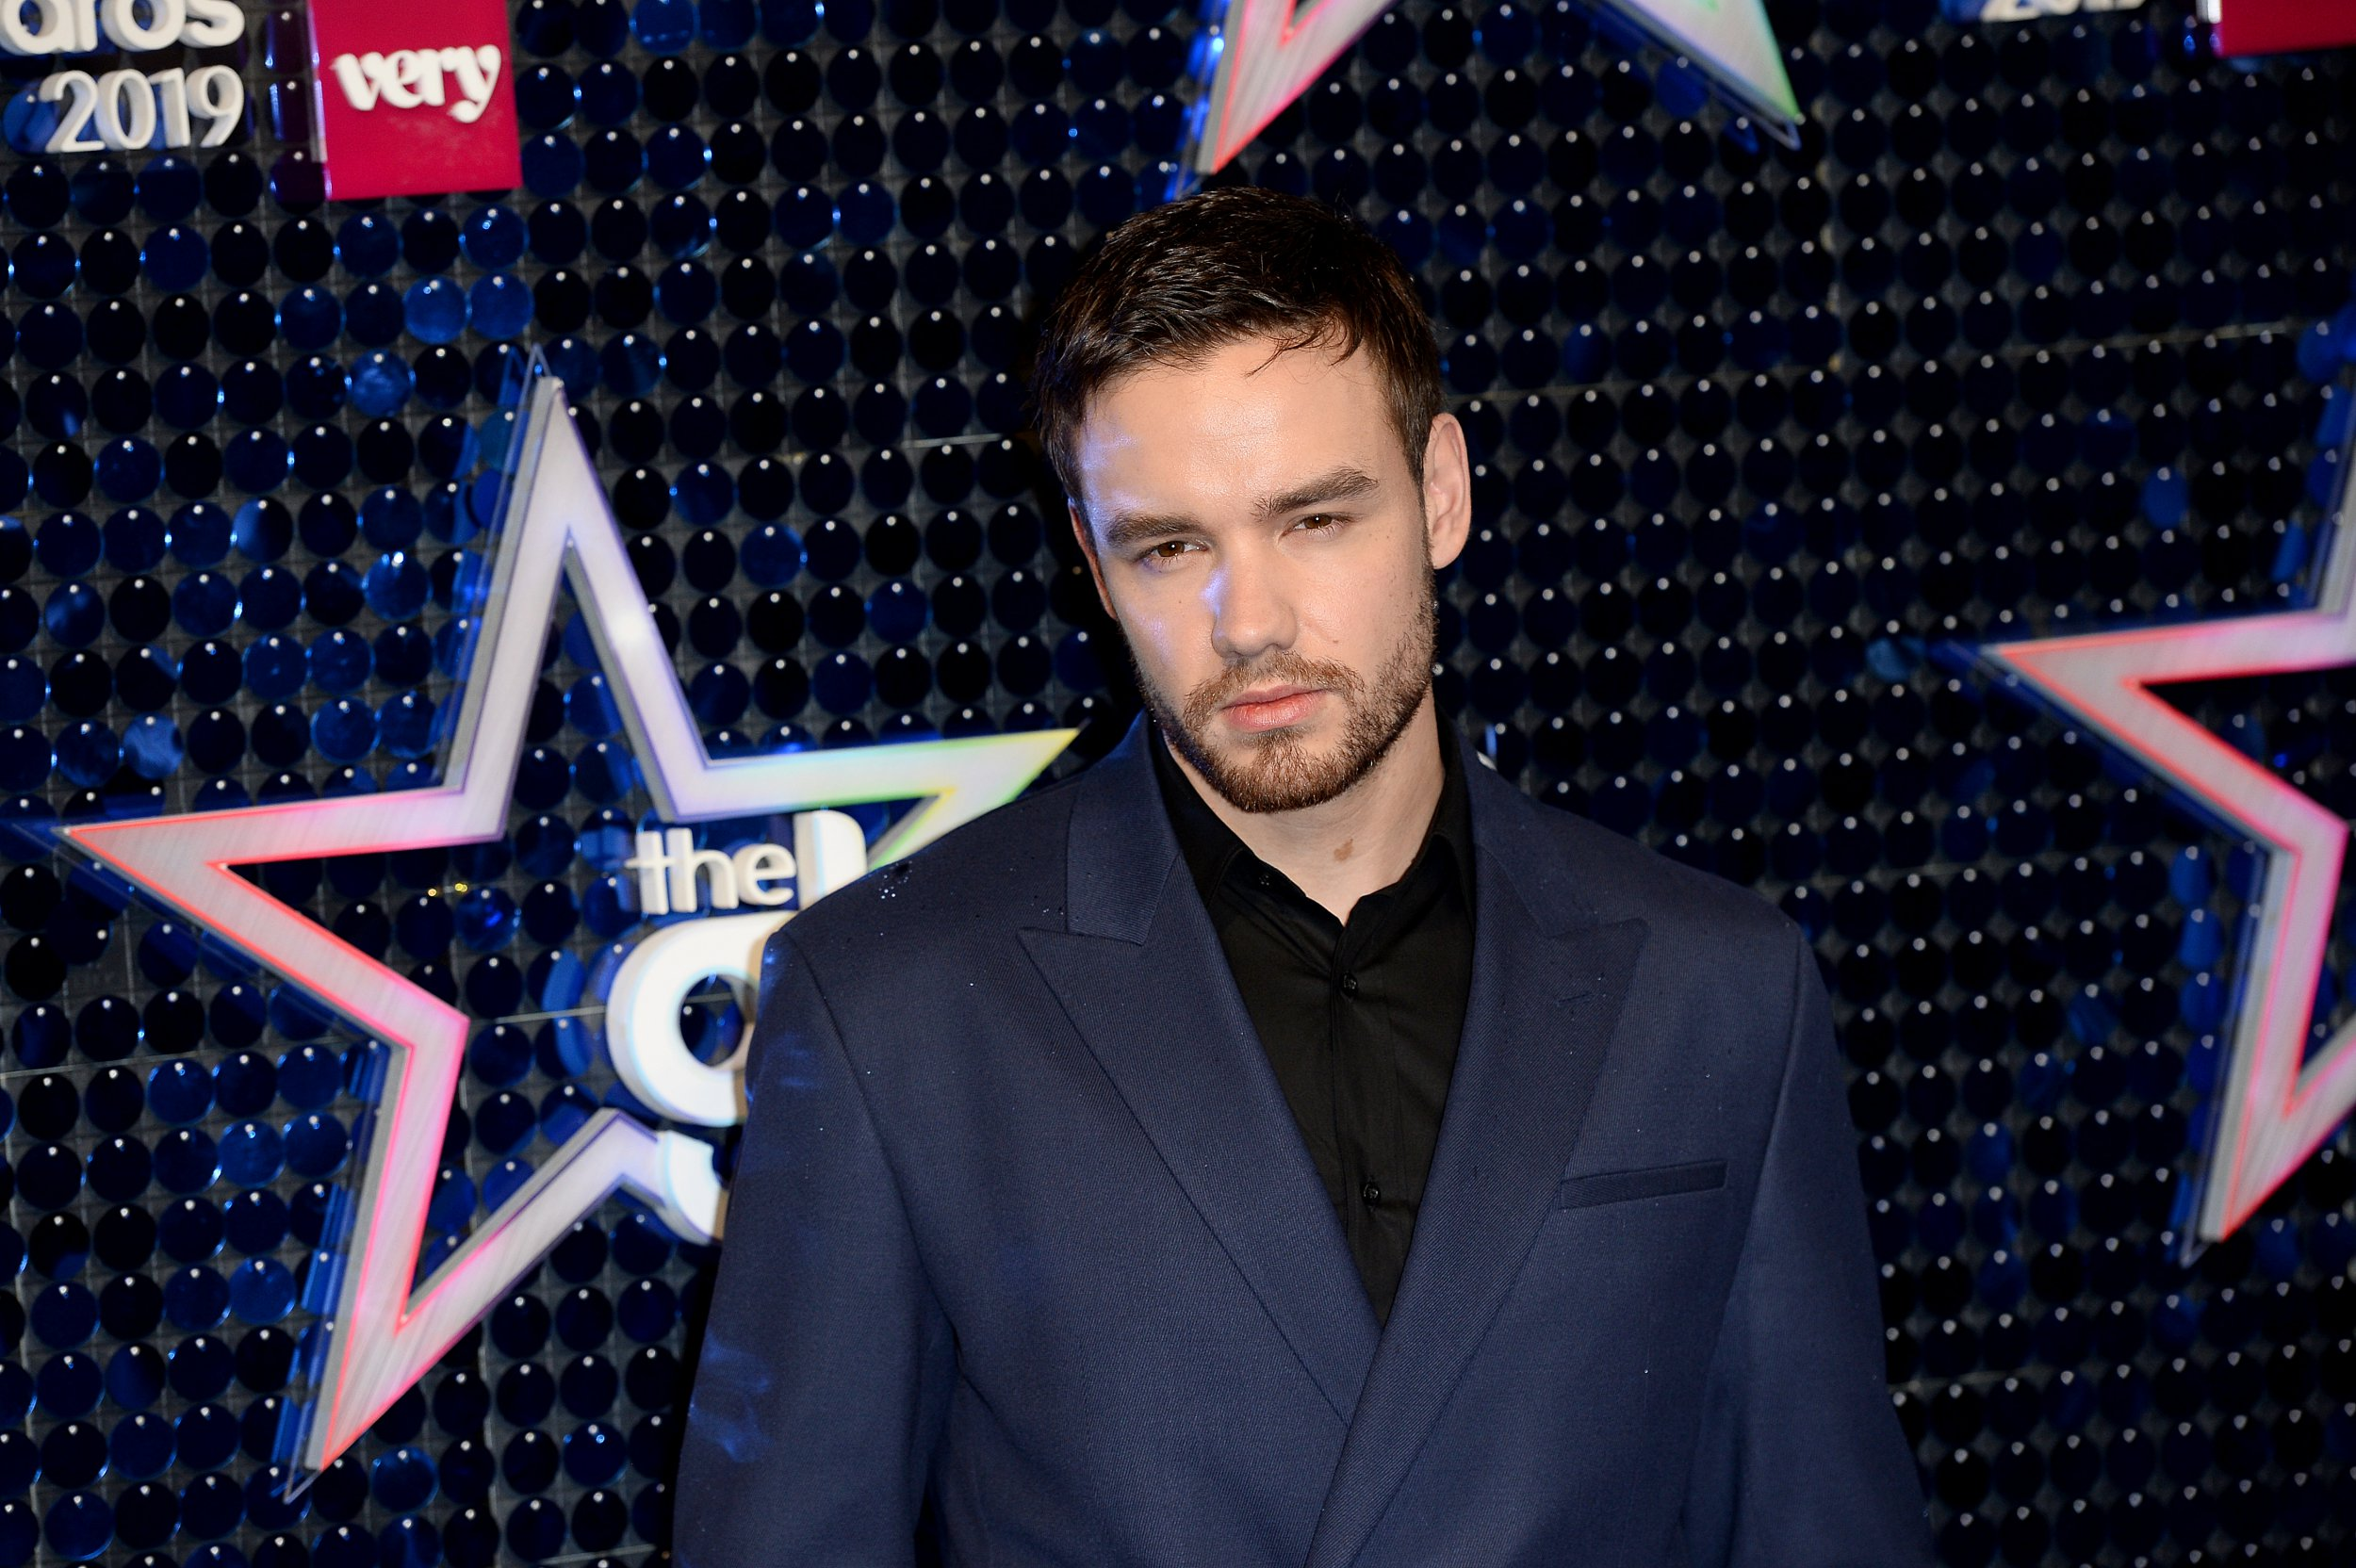 Liam Payne says being threatened with a knife at 12 years old was 'one of the scariest moments of his life'